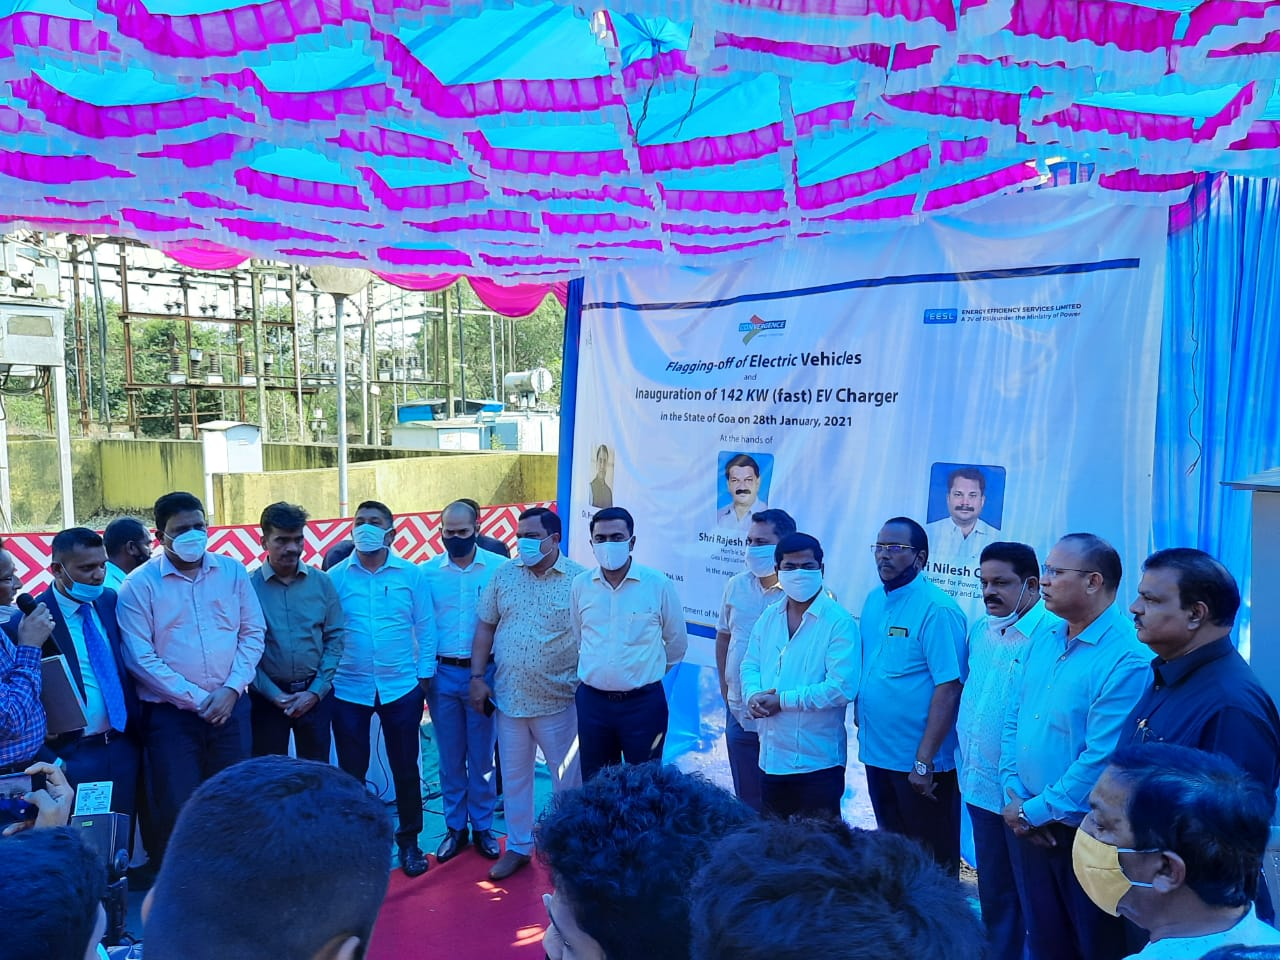 Chief Minister of Goa inaugurates first public EV charging station installed by CESL